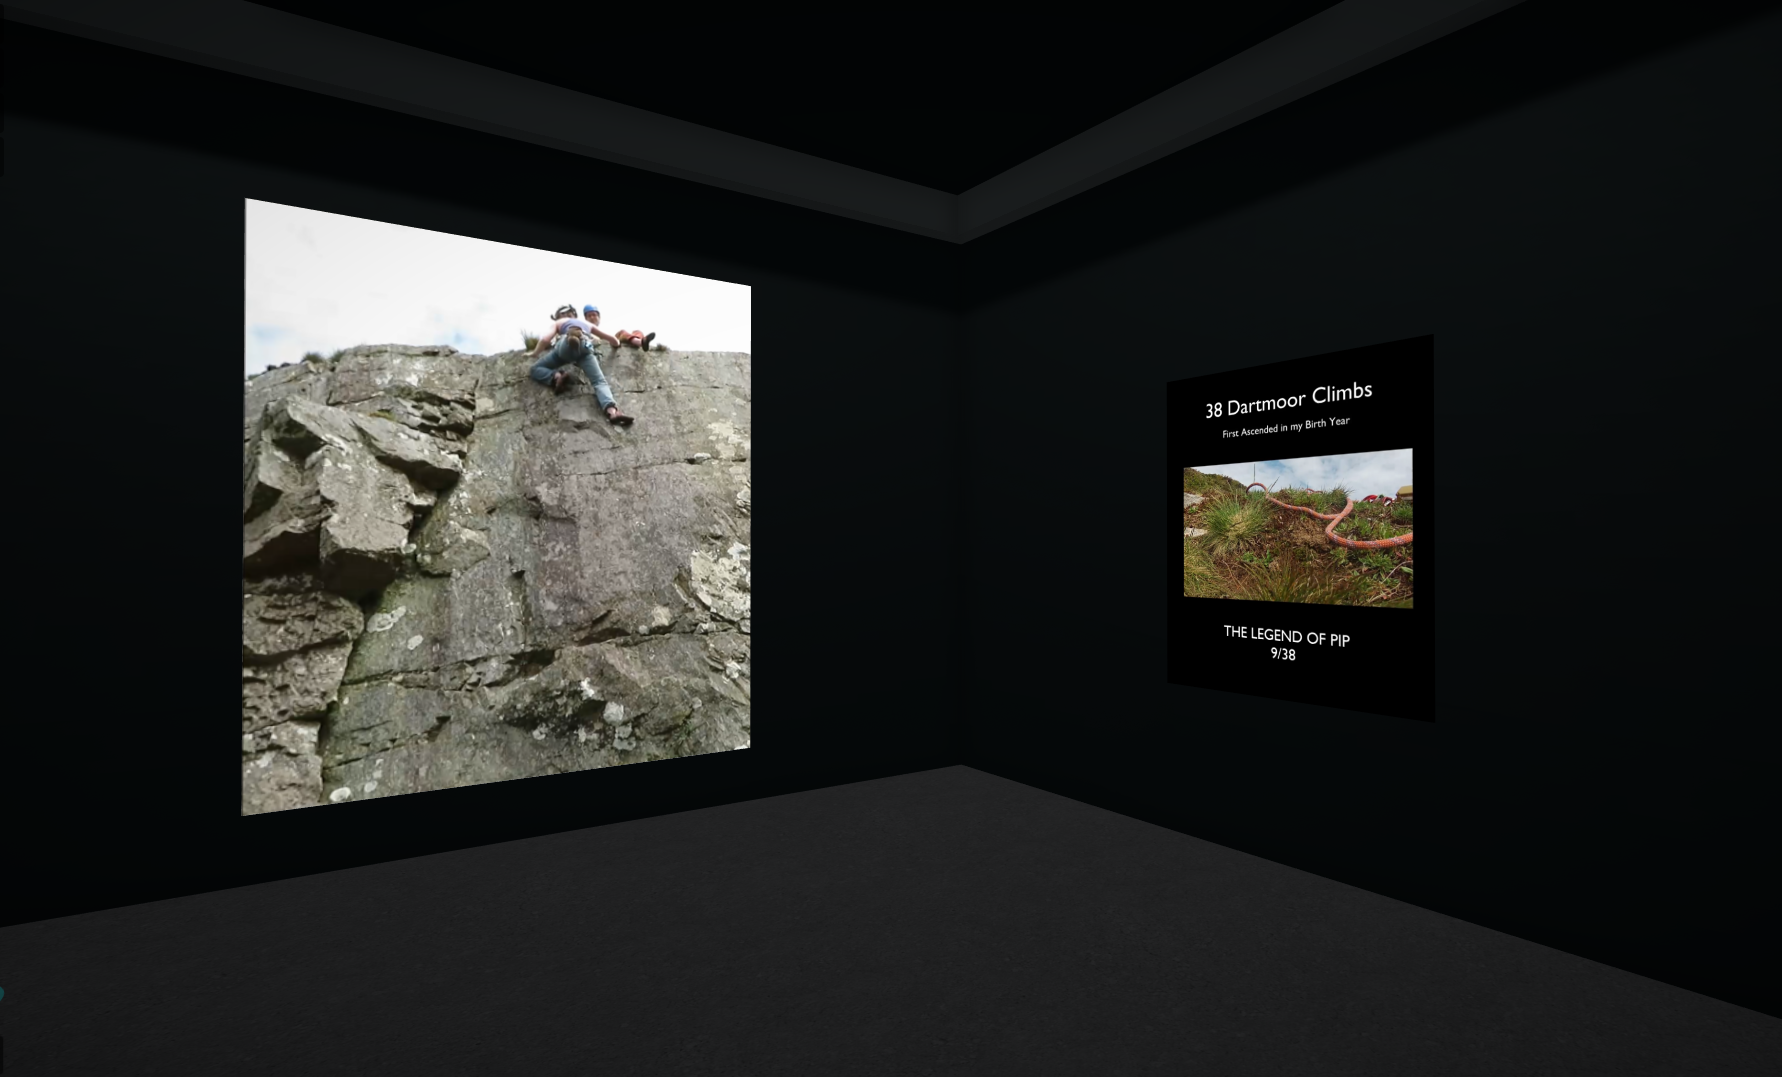 A rendering of a dark corner of a room – the video of the climber is split between the corner.